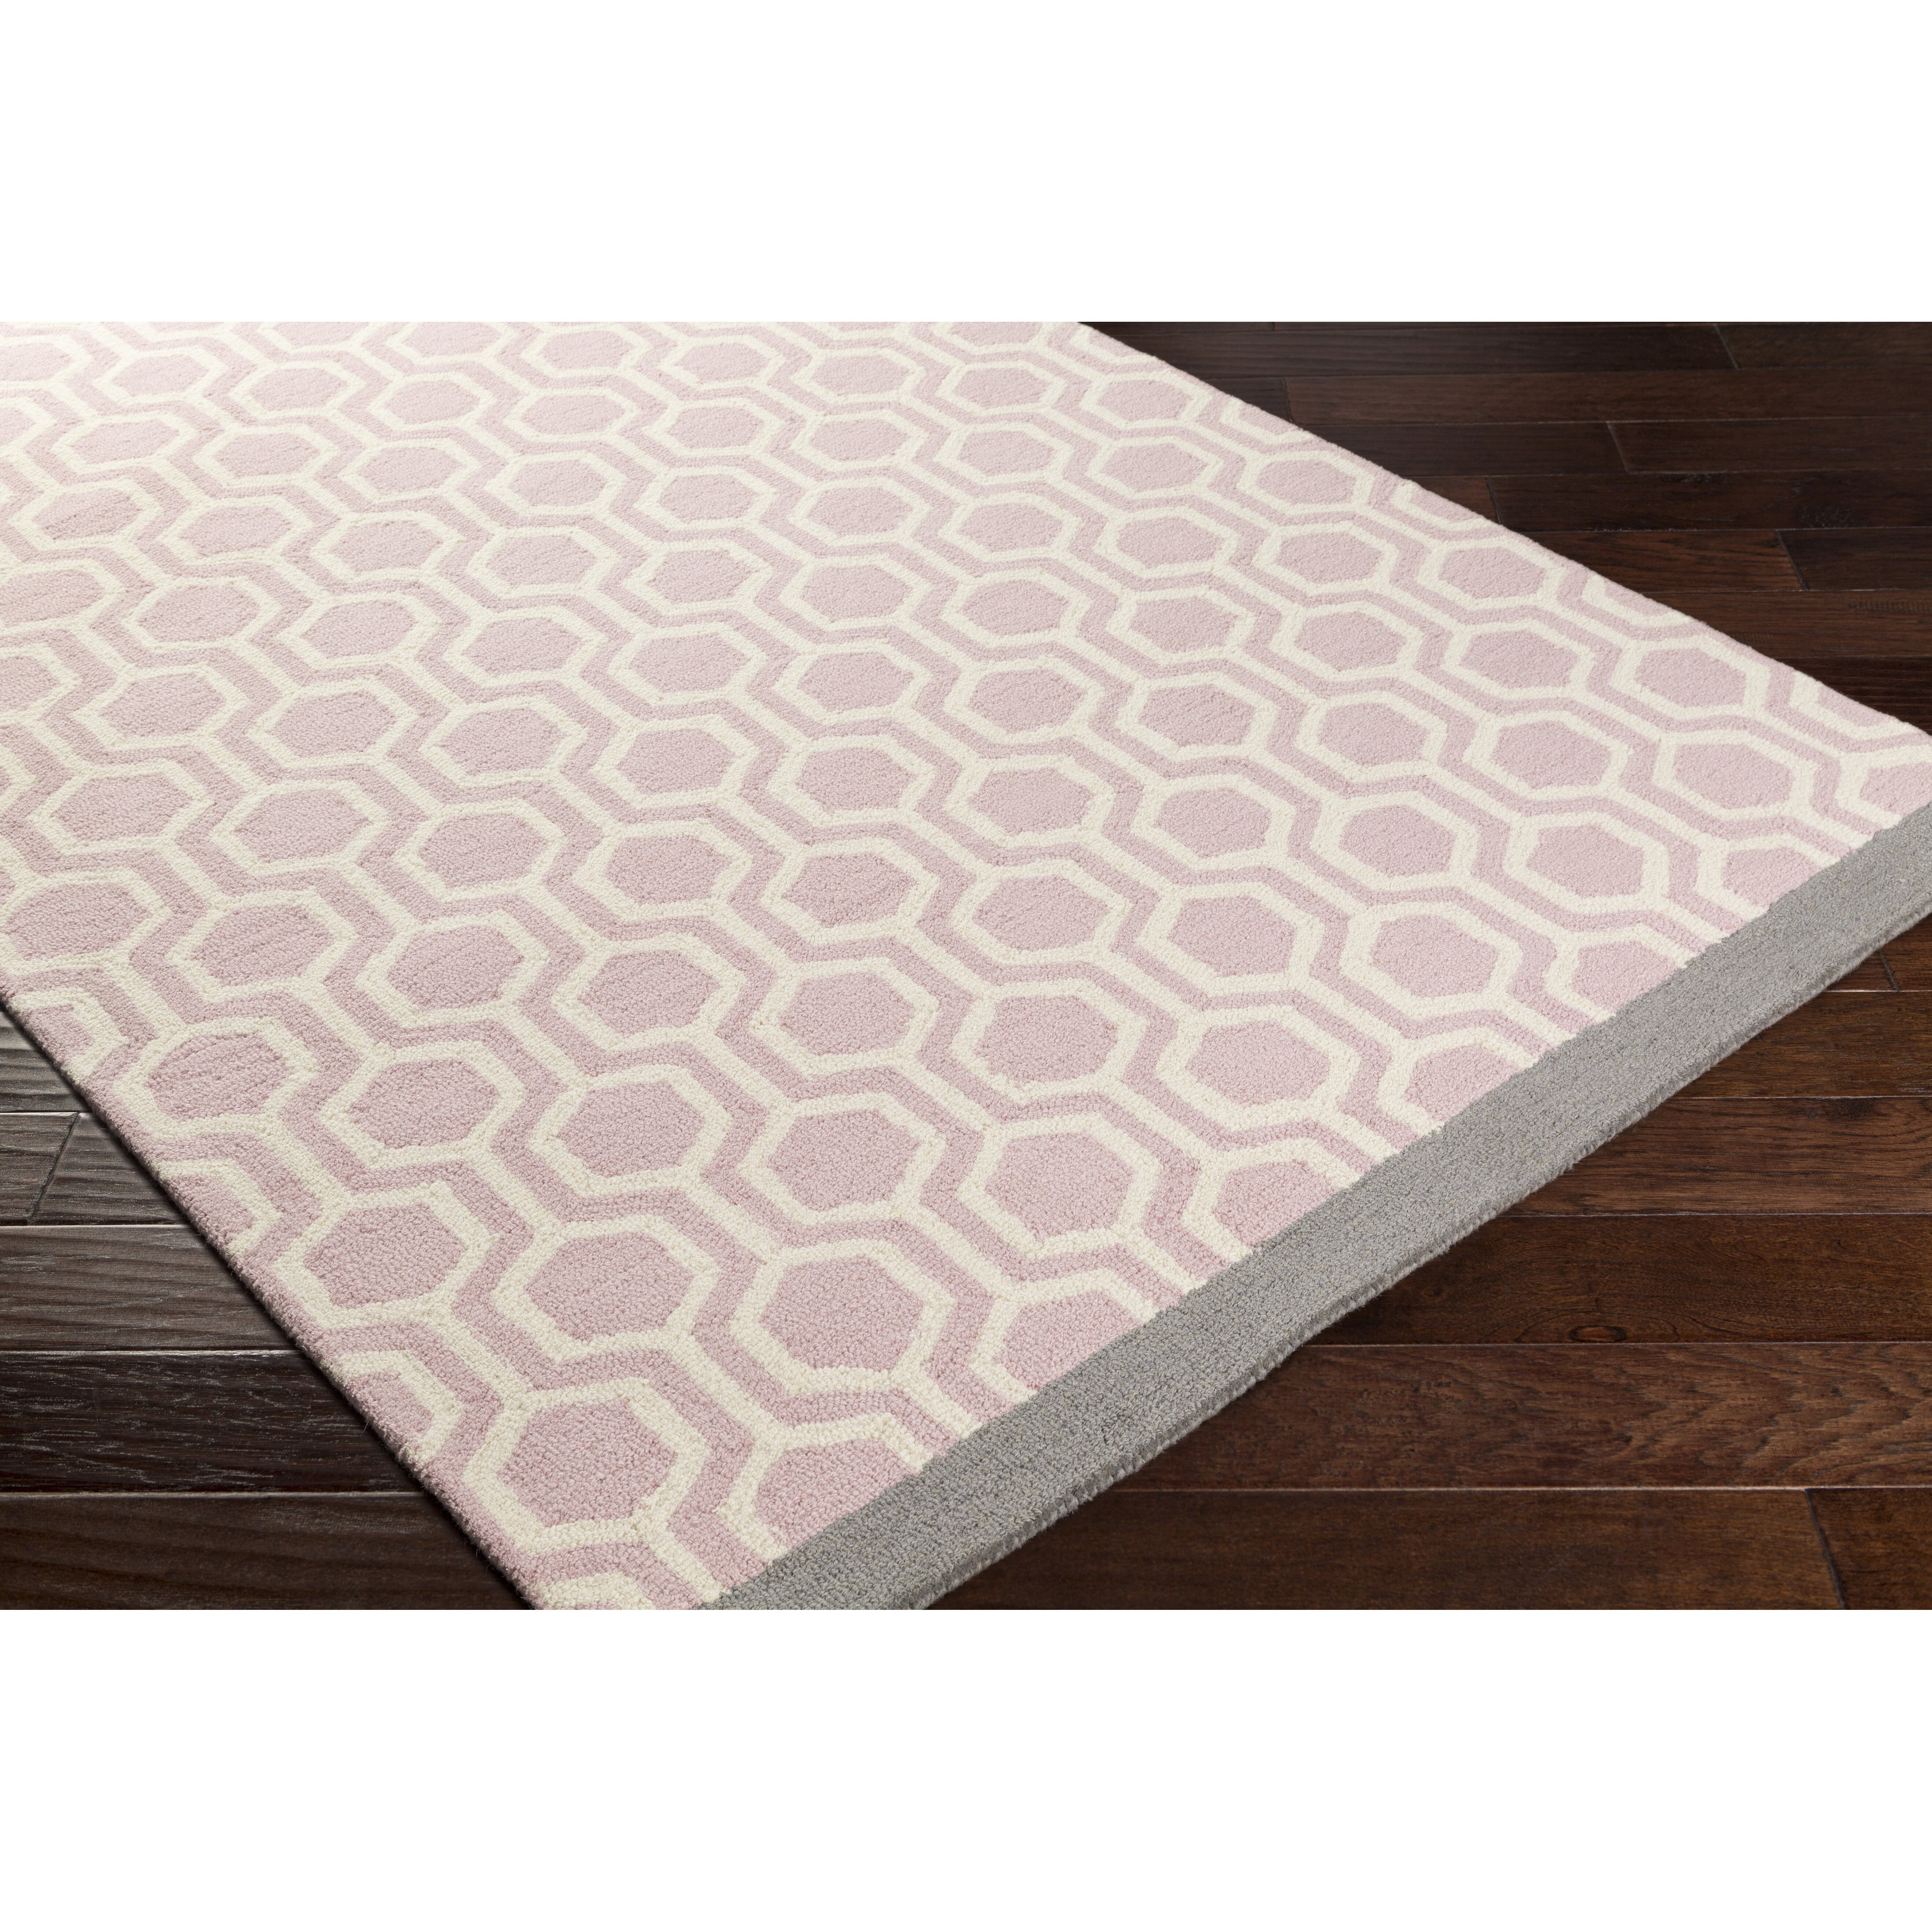 Artistic Weavers Hilda Eva Hand Crafted Light Pink/Gray Area Rug